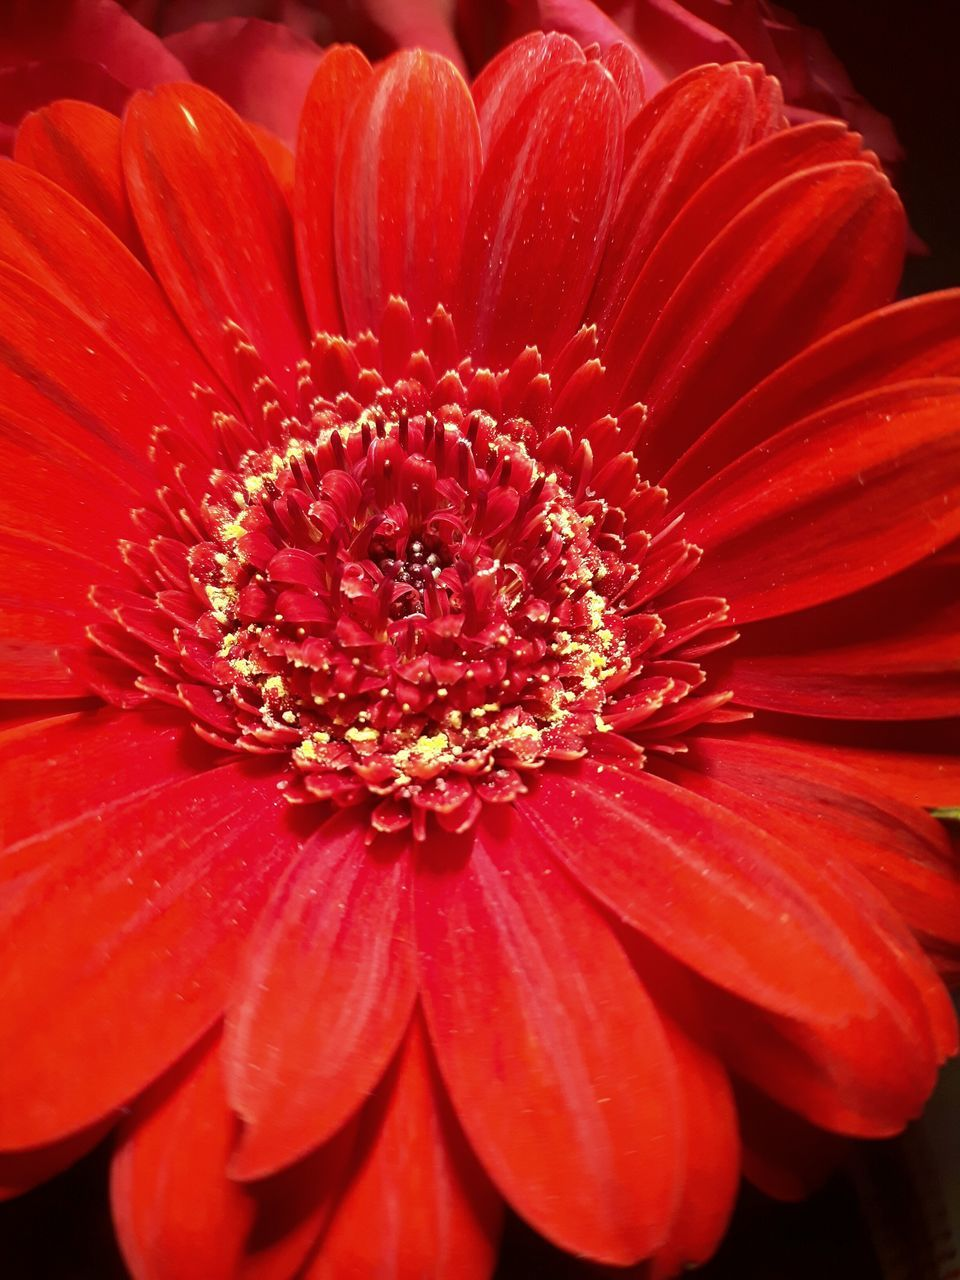 flower, petal, flower head, fragility, beauty in nature, freshness, nature, pollen, growth, no people, red, close-up, plant, blooming, day, outdoors, gazania